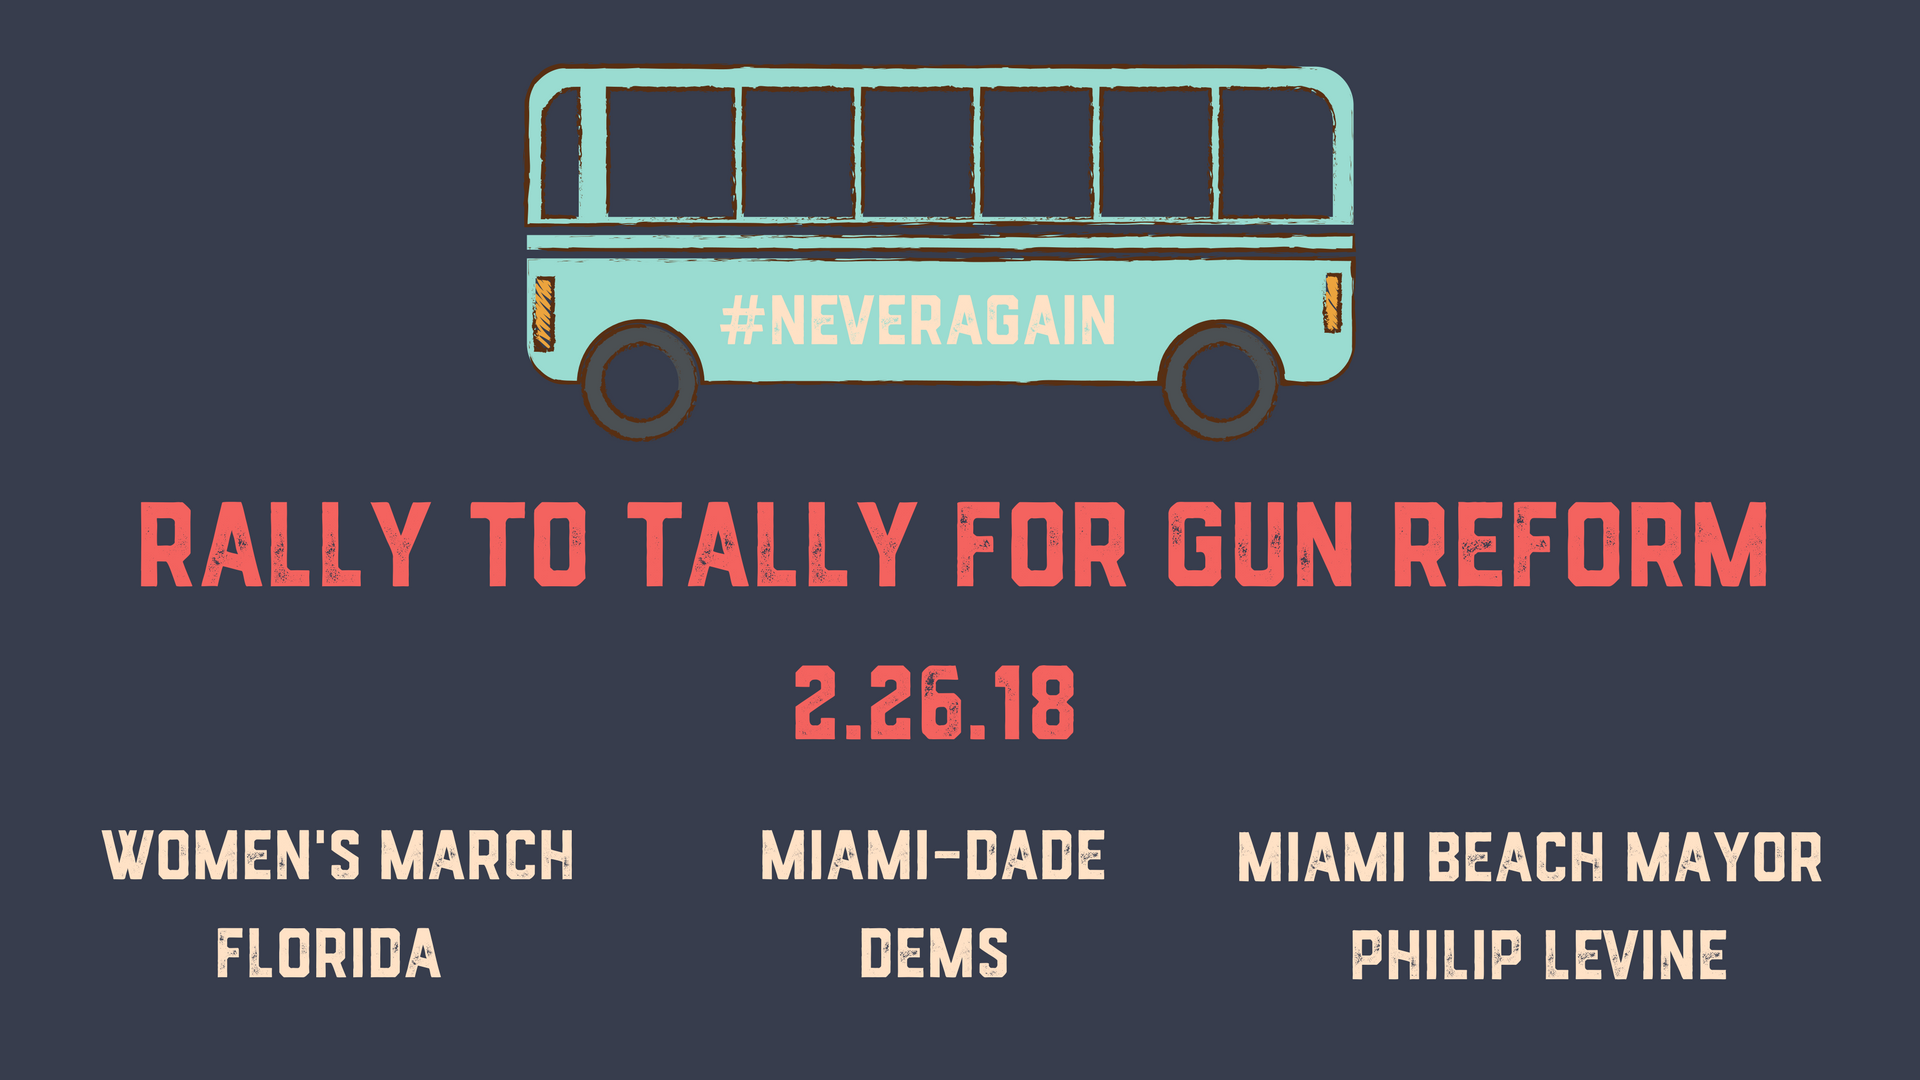 RALLY_TO_TALLY_FOR_GUN_REFORM_(5).png